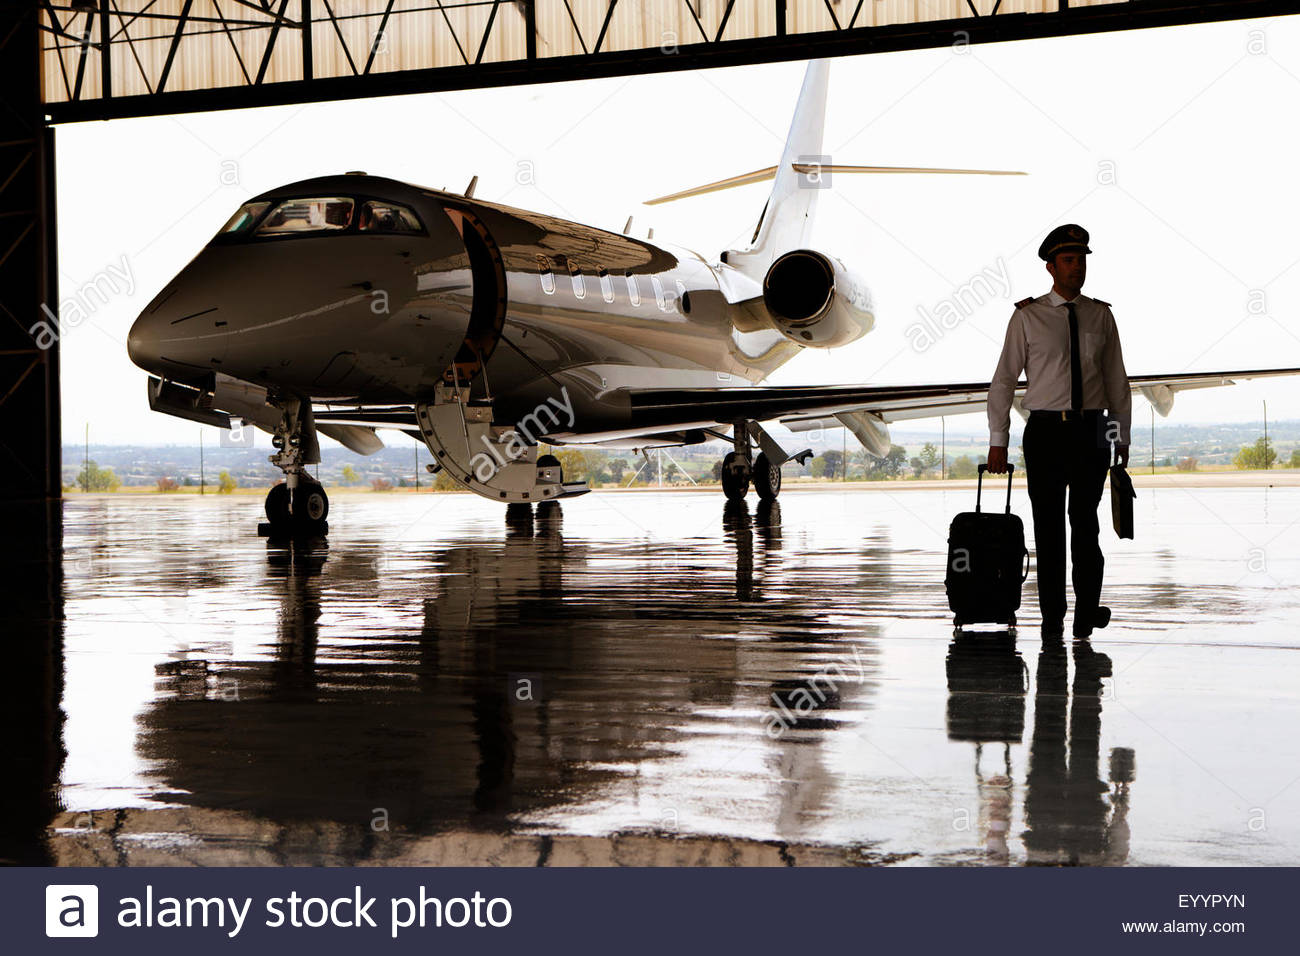 Silhouette of pilot walking away from private jet in hangar - Stock Image